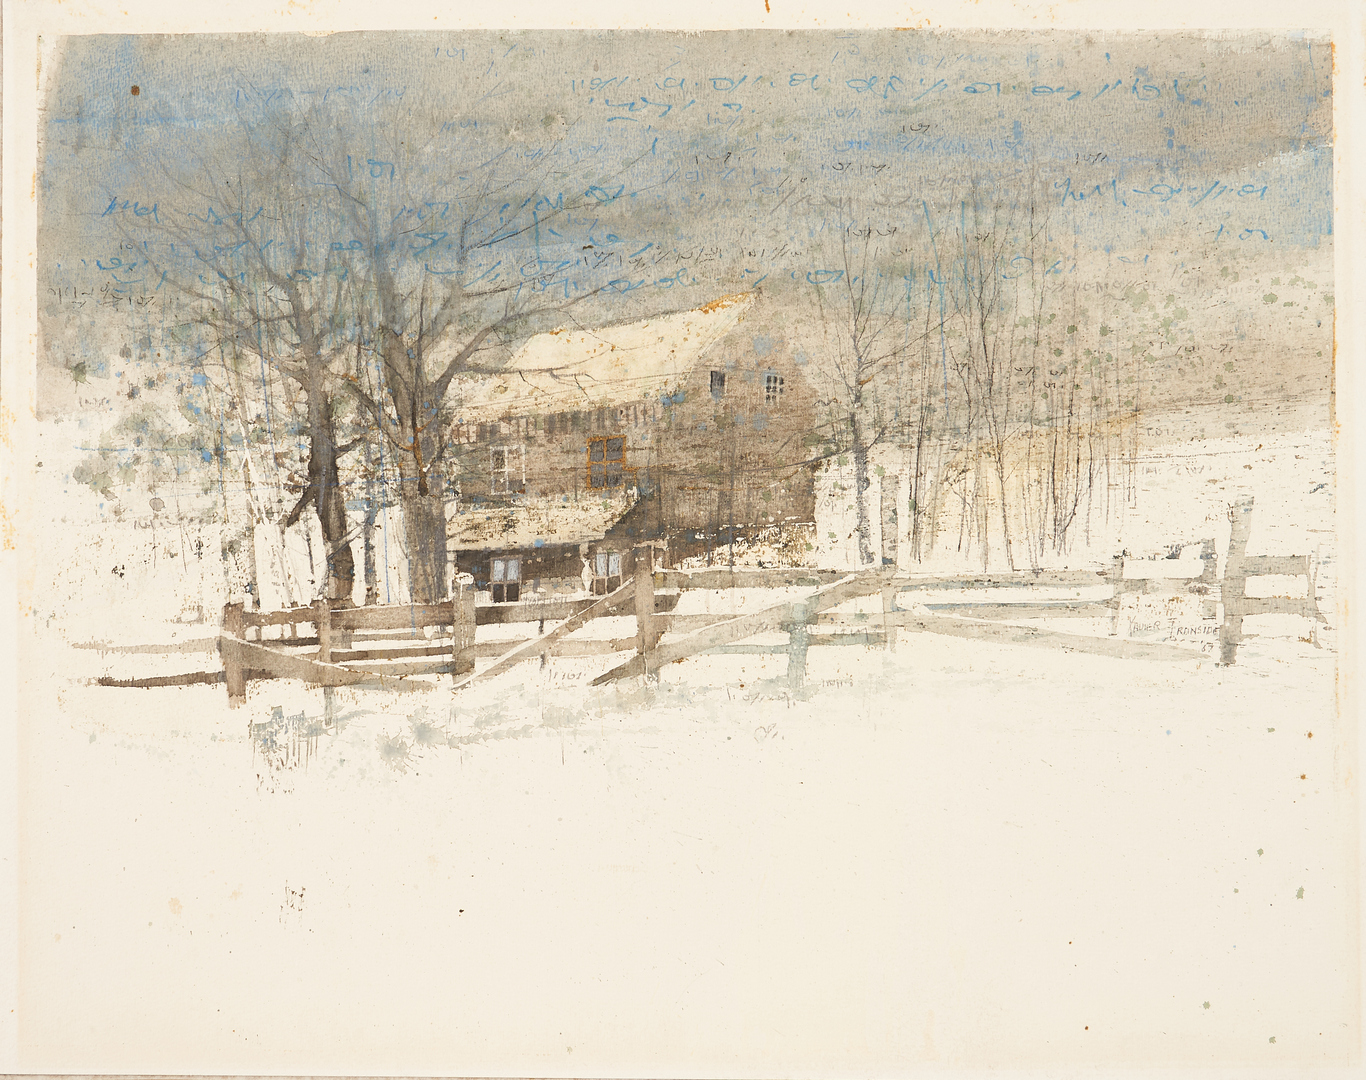 Lot 356: Two (2) Tennessee Works on Paper, Birdwell, Ironside